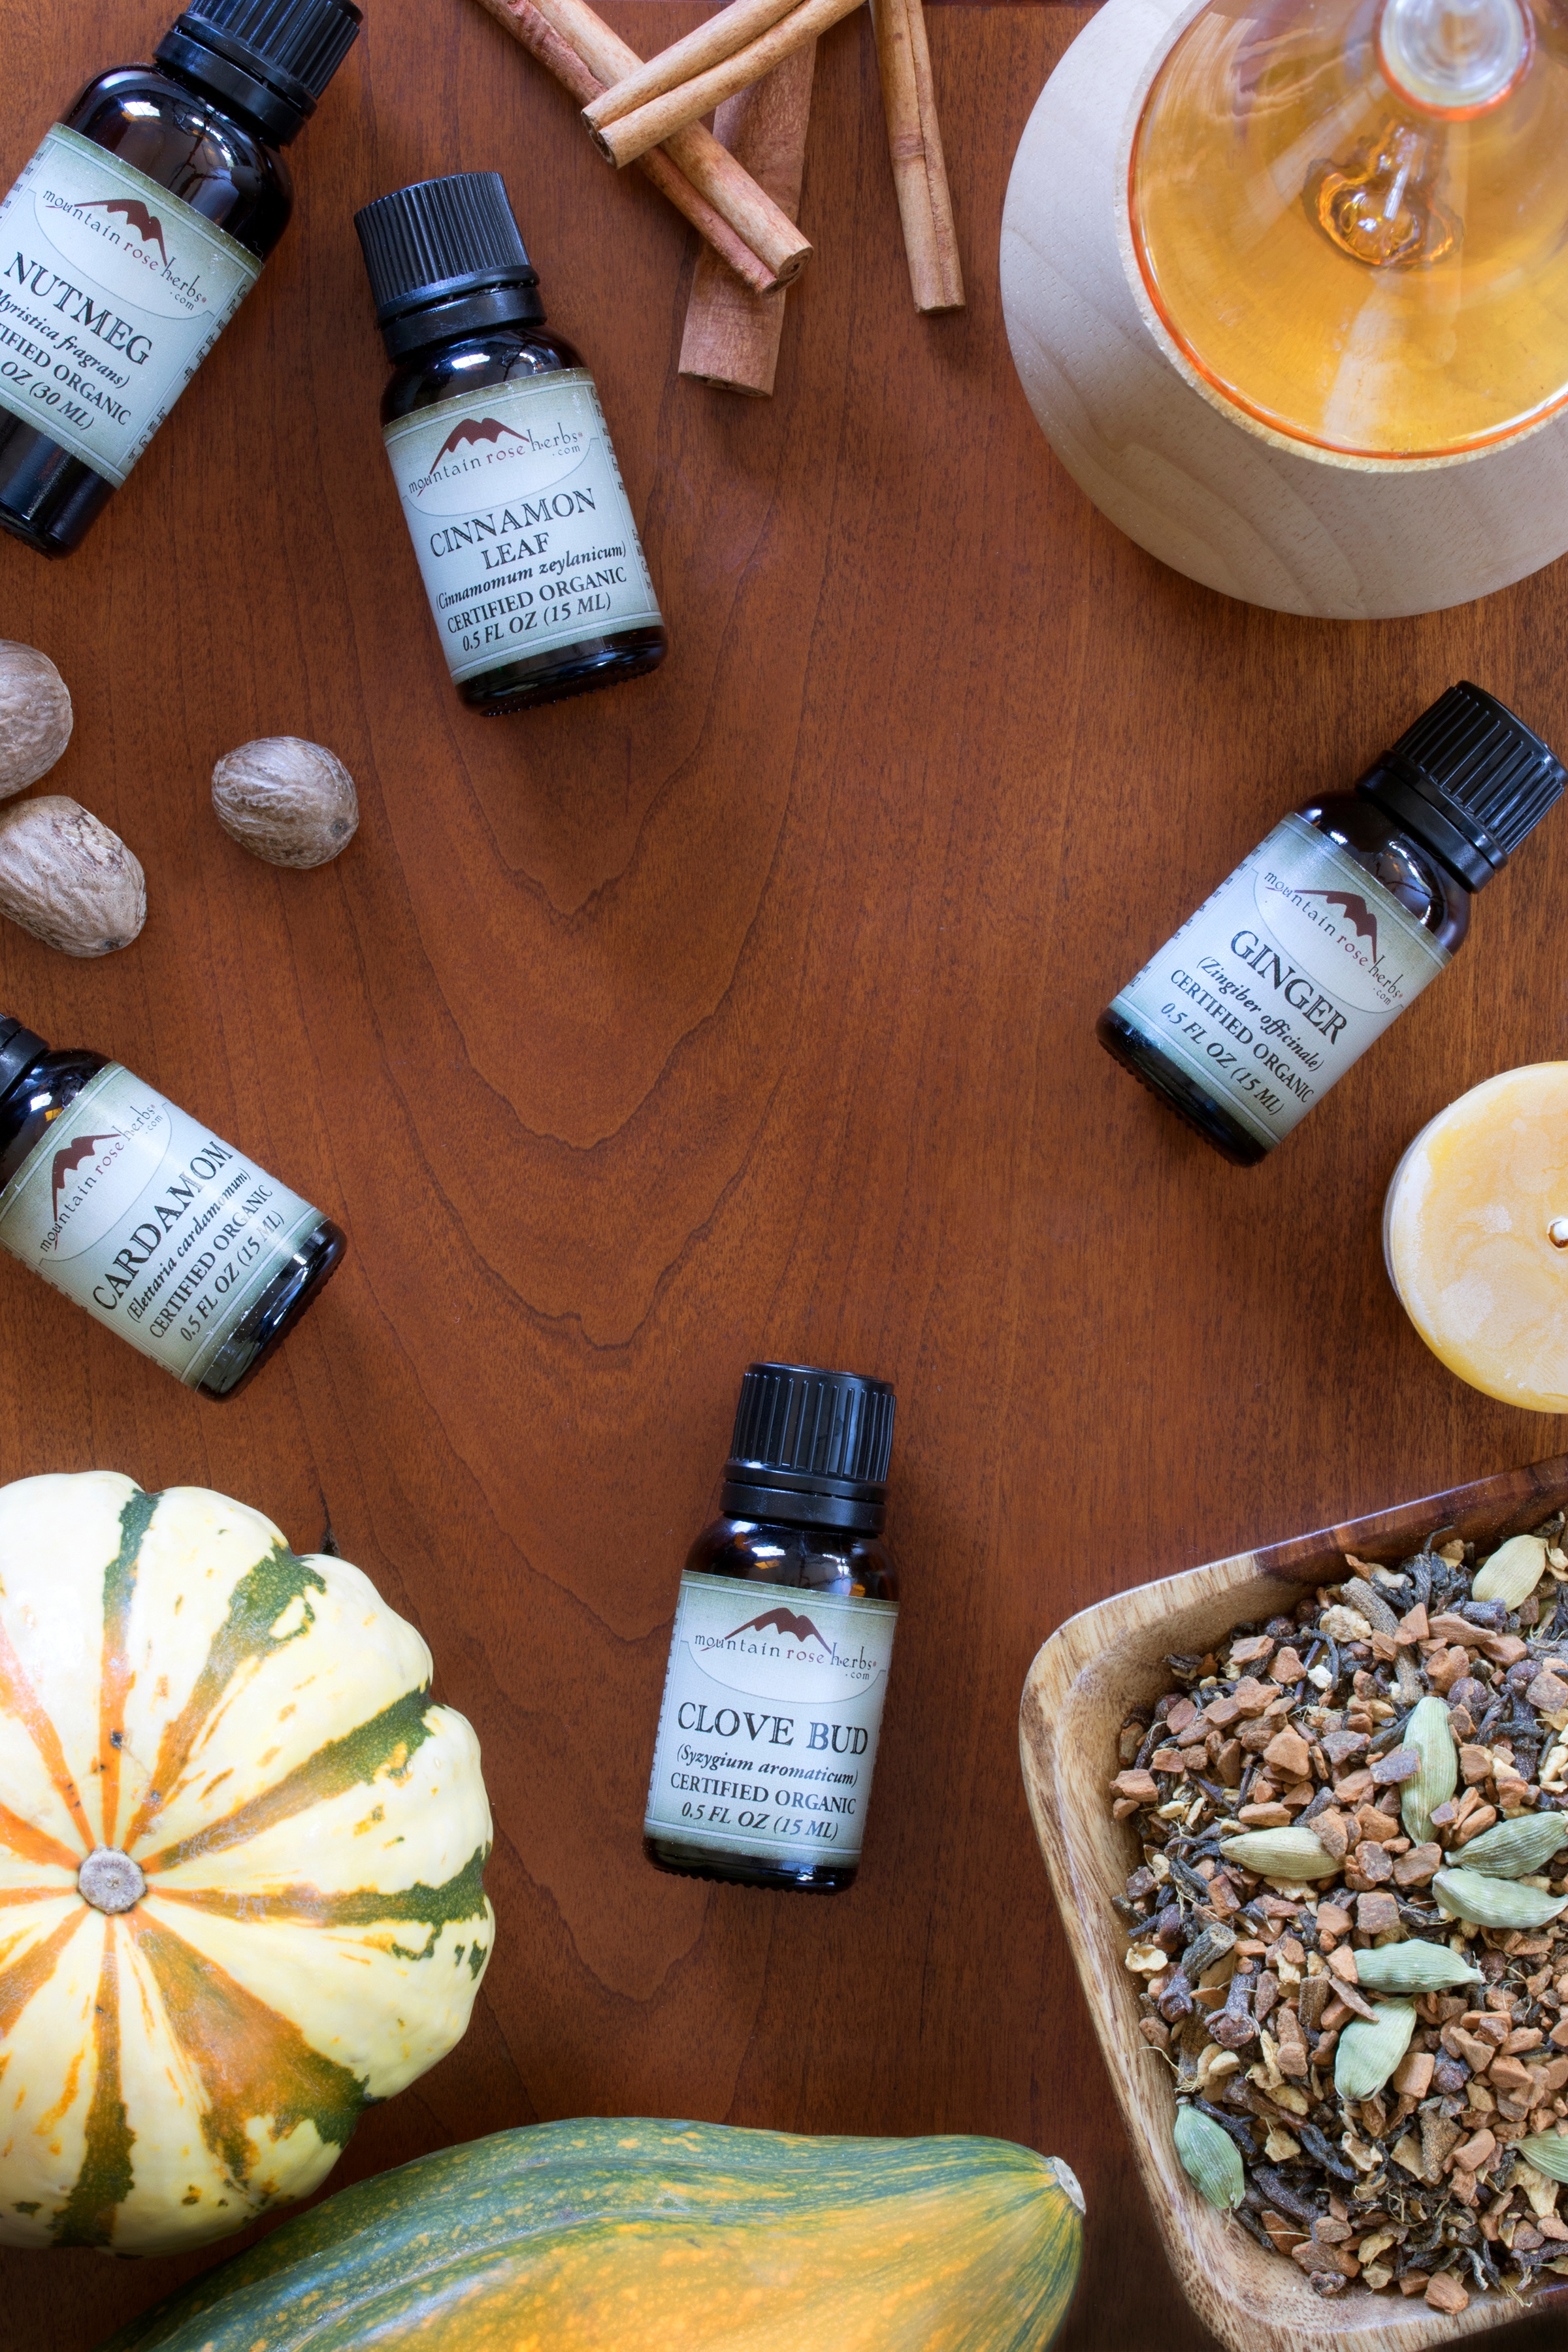 Ginger, Cardamom, and Clove Bud Essential Oils on table with candles, herbs, and pumpkins